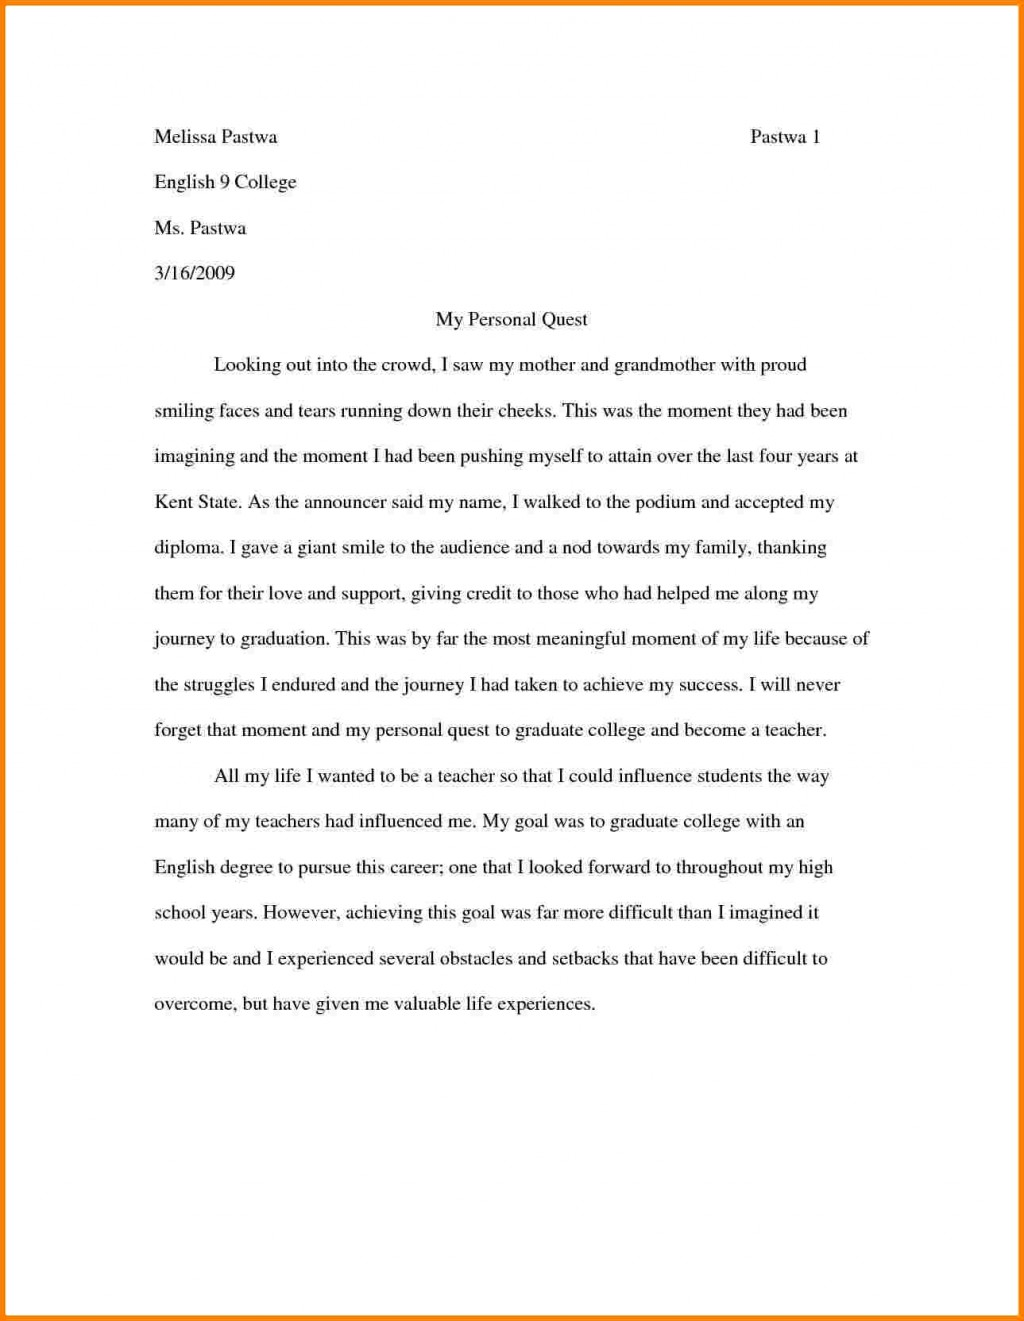 014 3341381556 How To Write Proposal Argument Essay What Is Excellent A Large